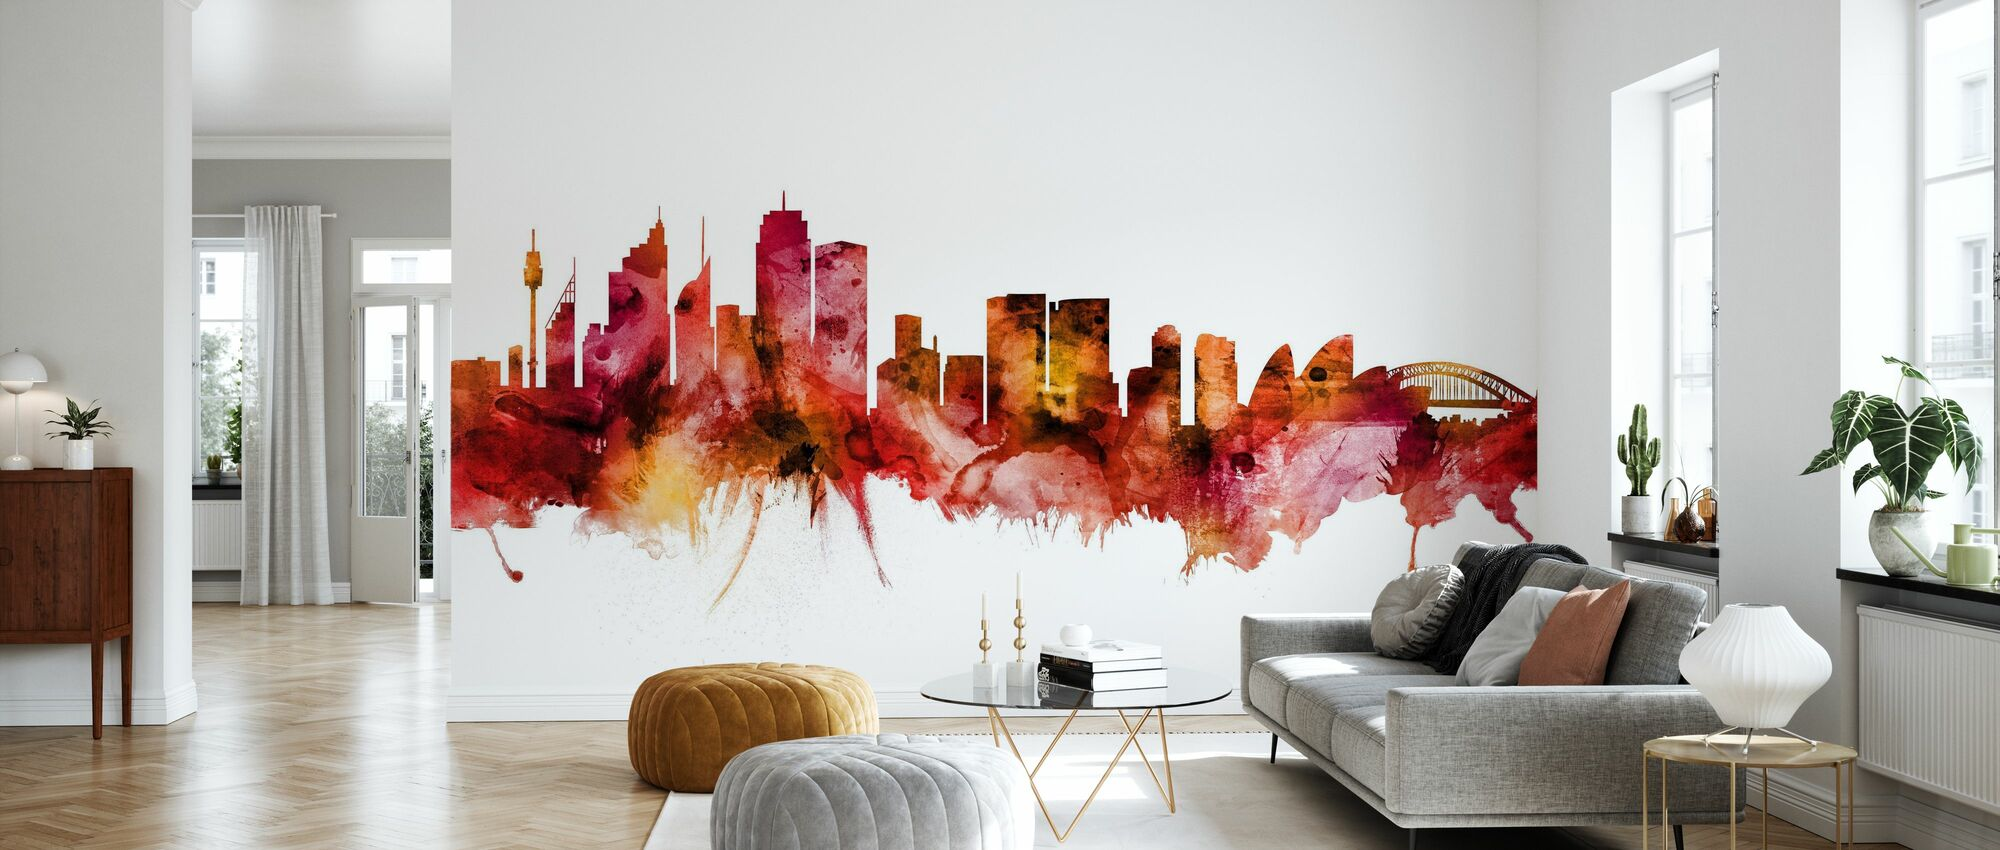 Sydney Australia Skyline - Wallpaper - Living Room